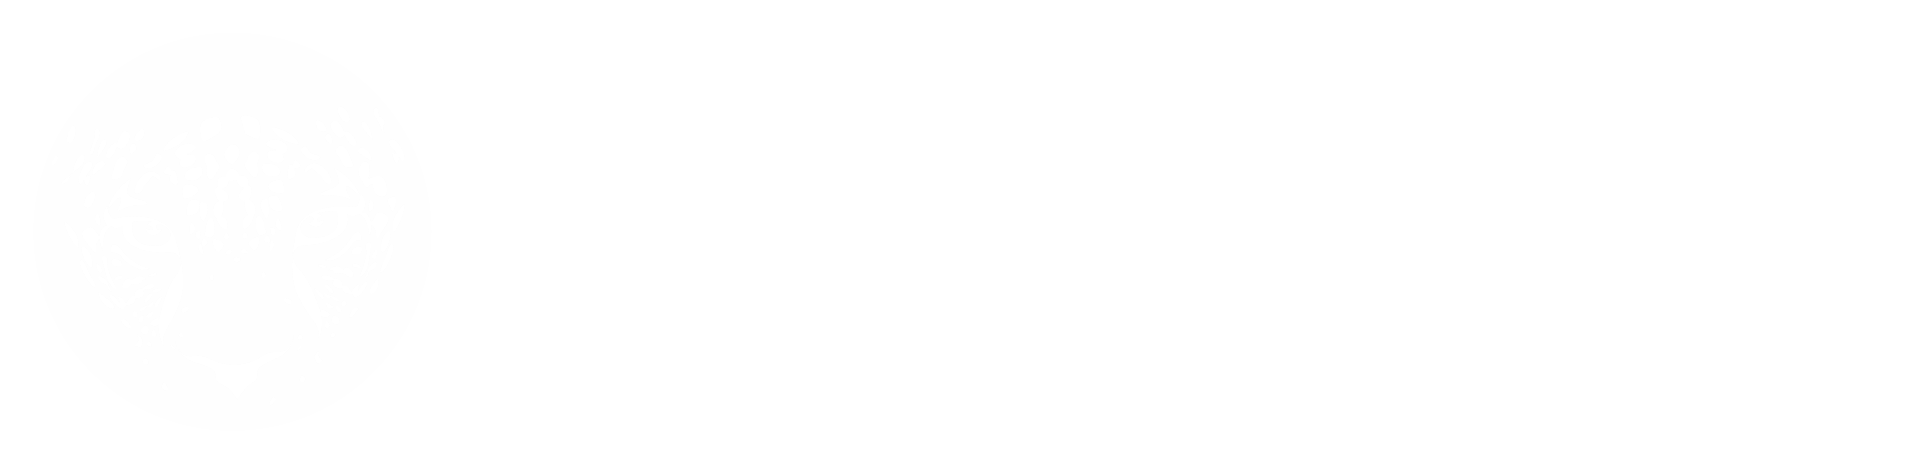 Golden Sky Safaris